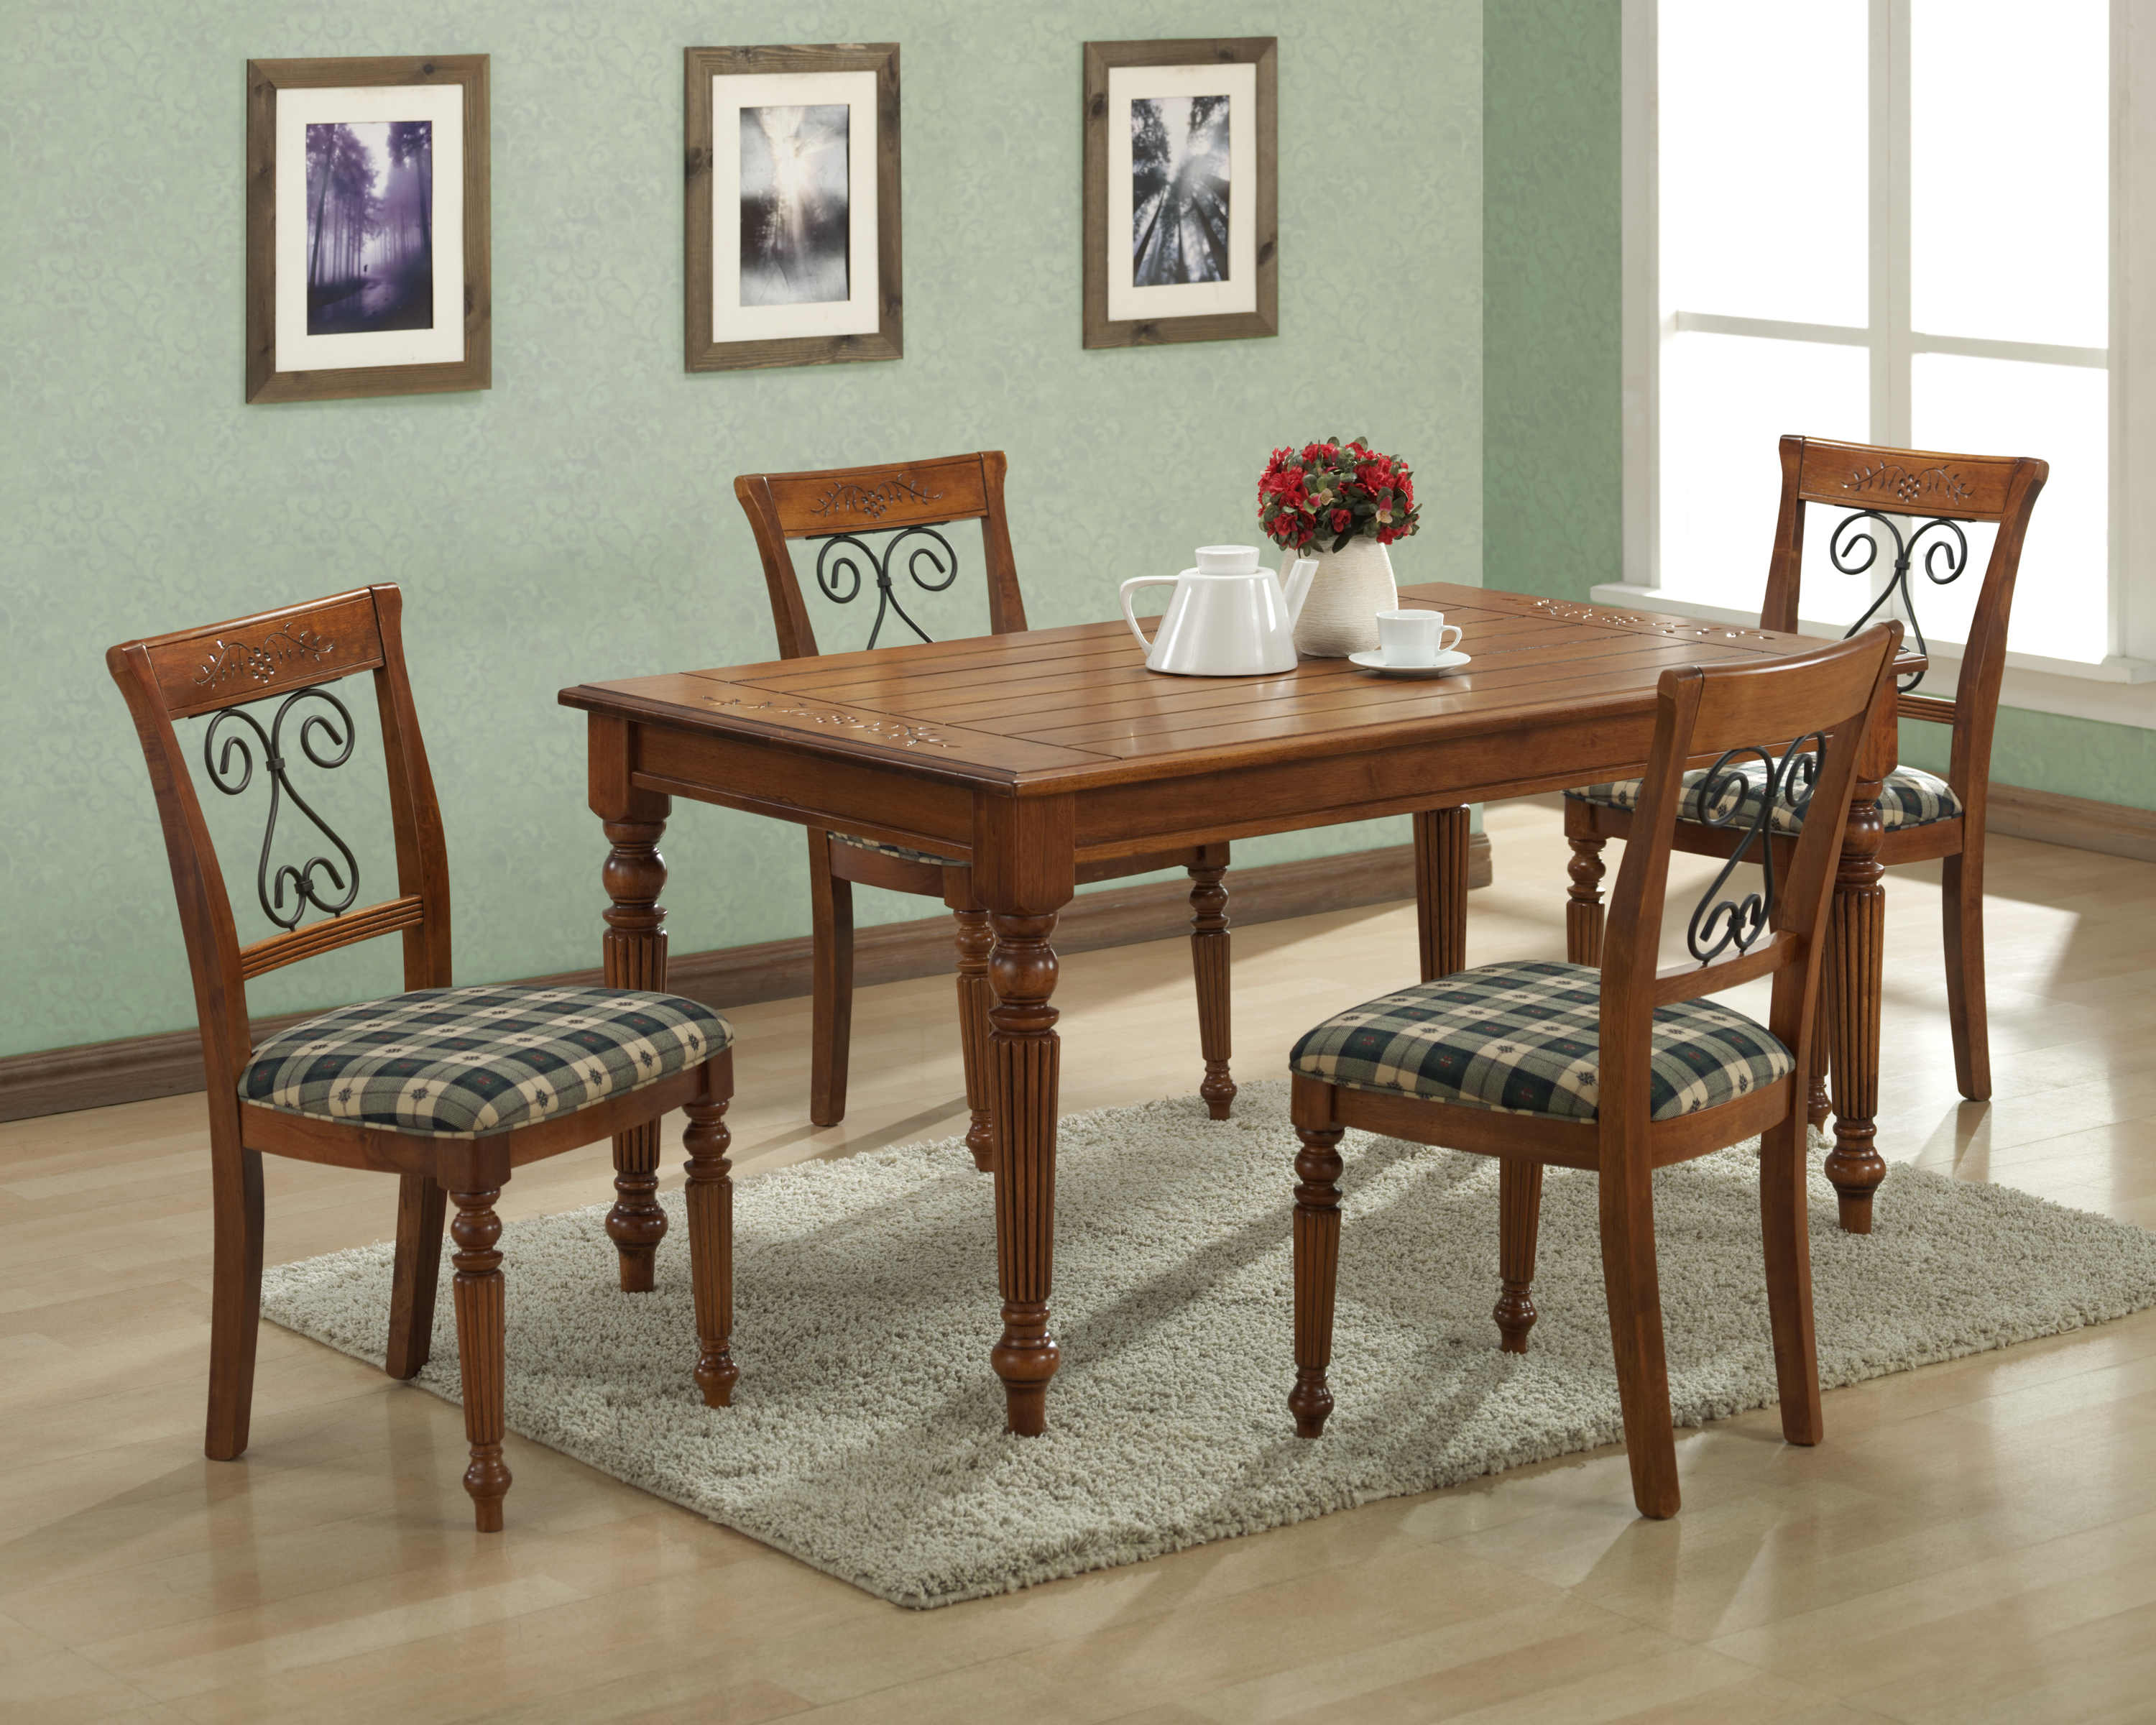 chair pads dining room chairs ] - room updates cushion eclectic